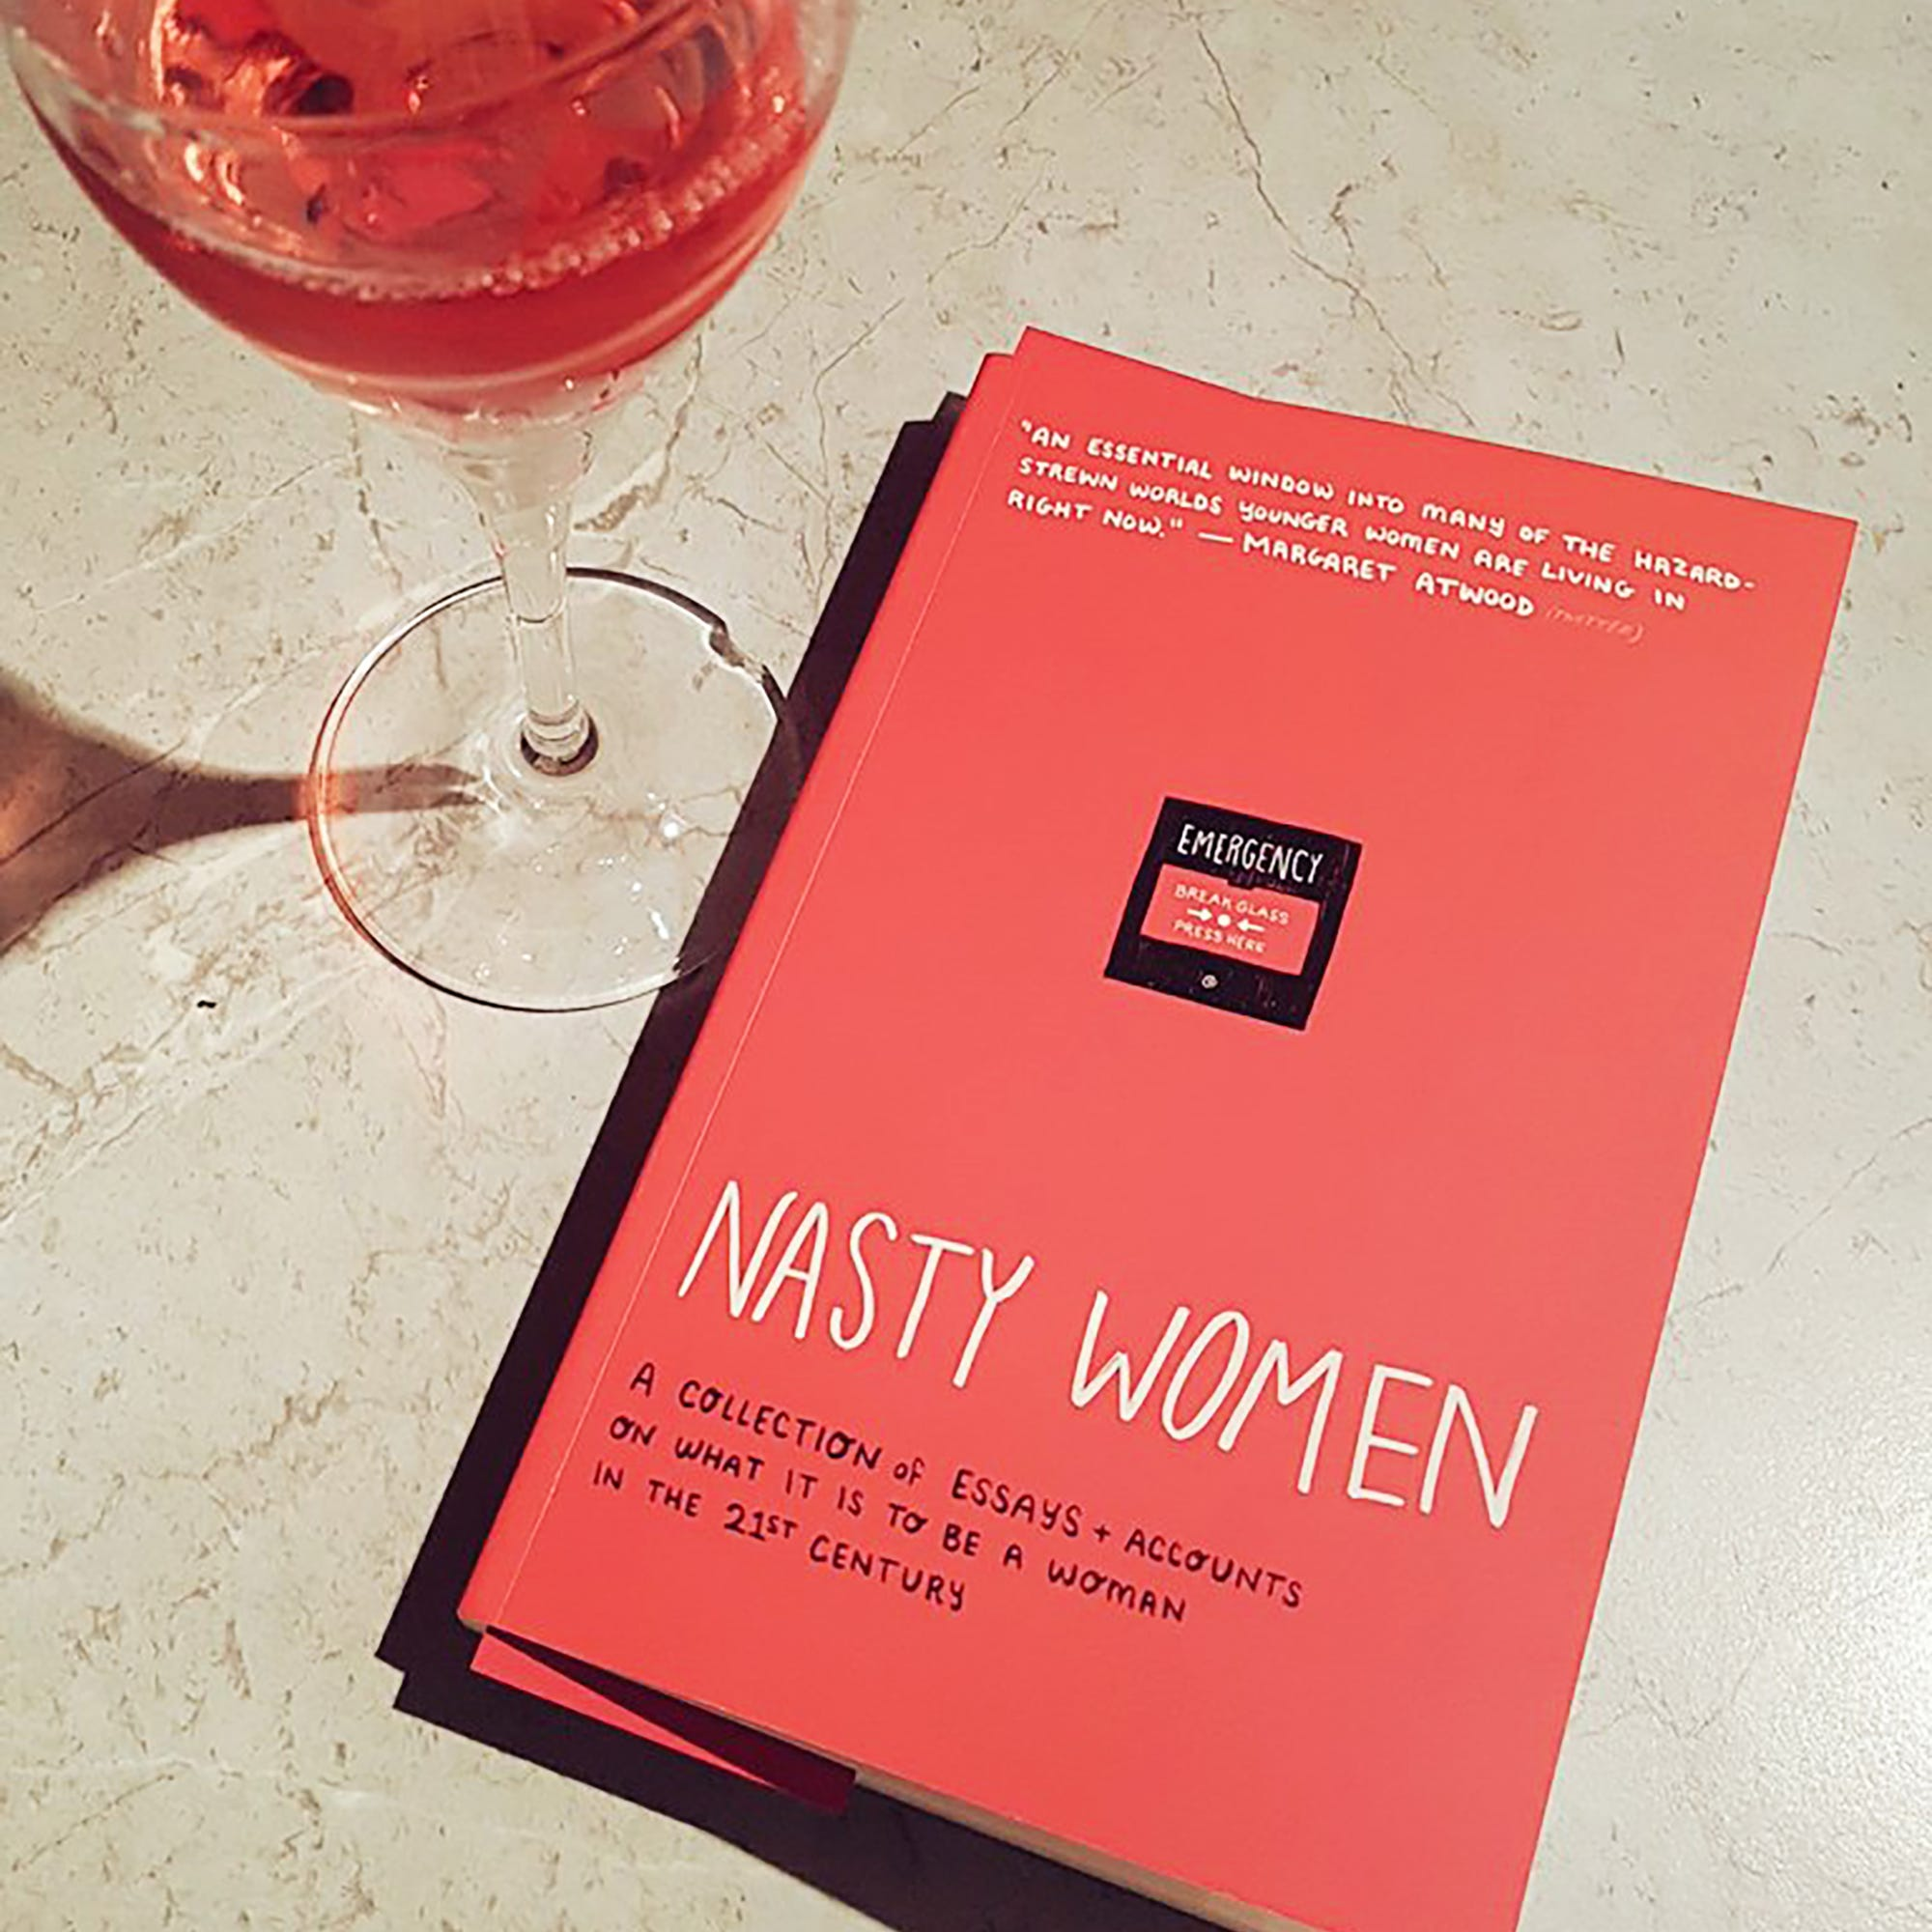 nasty women new book ink